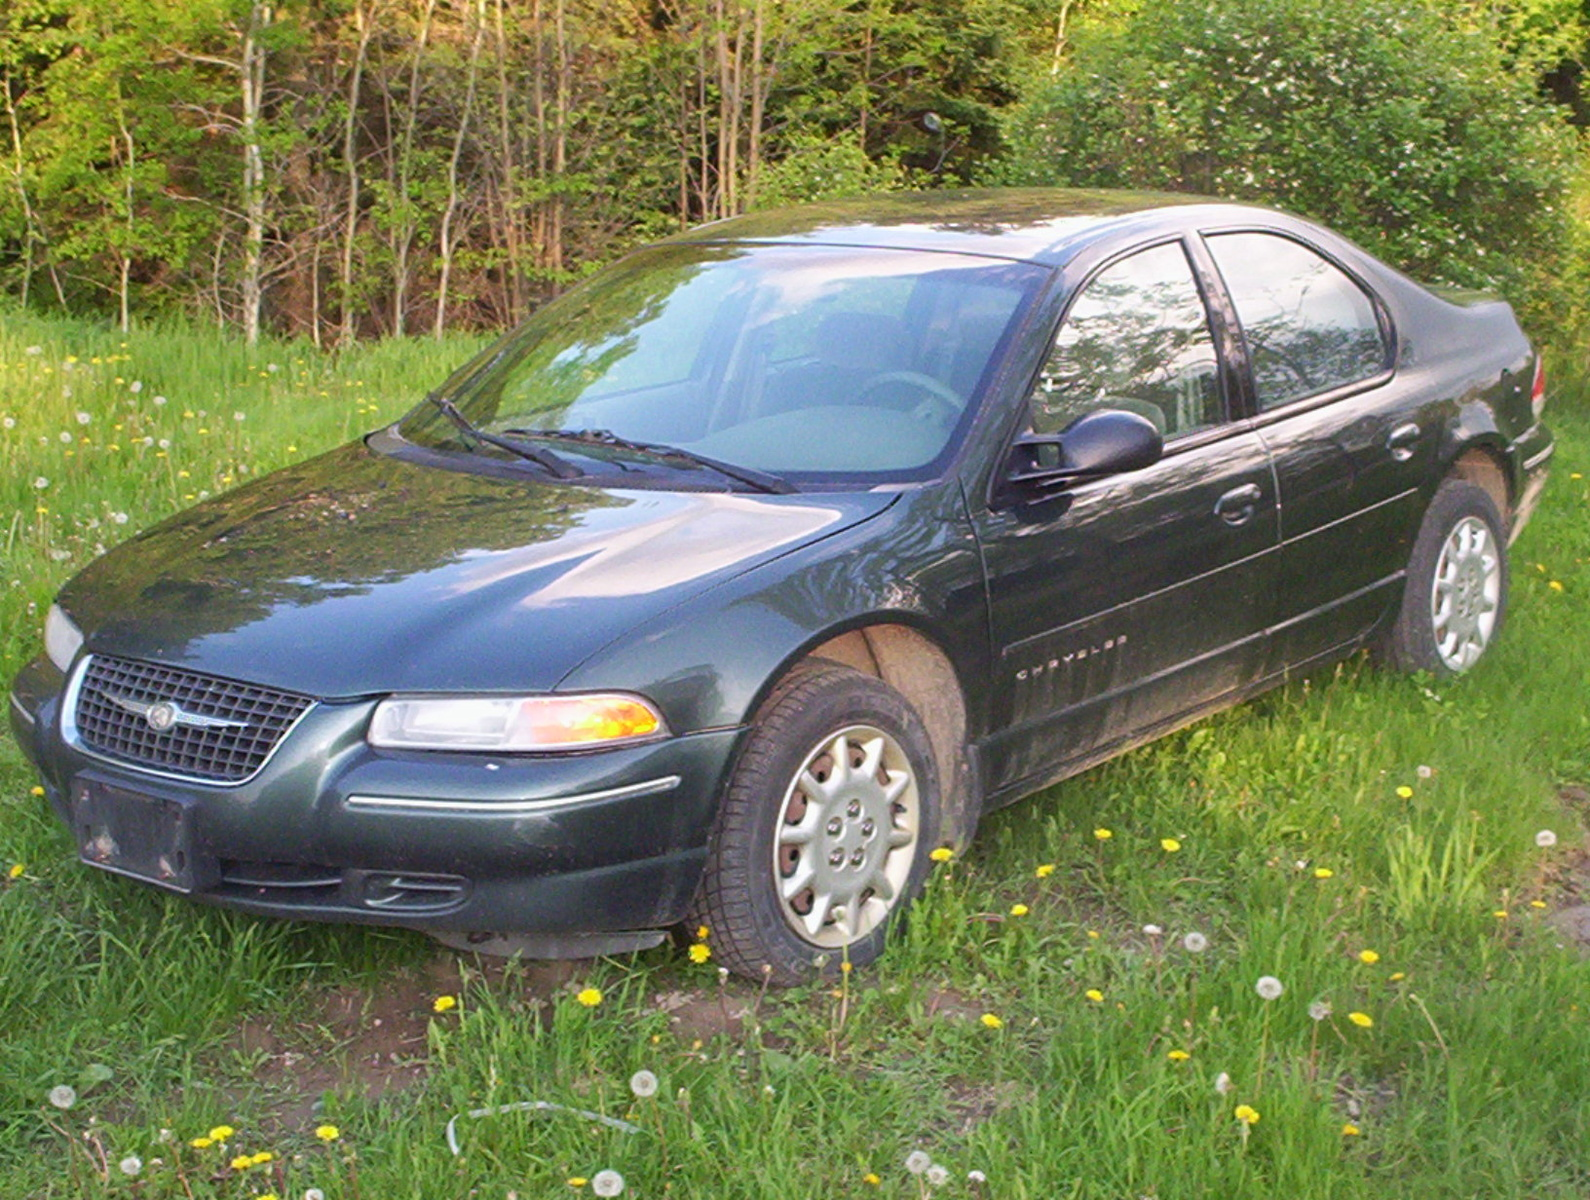 2000 Chrysler Cirrus picture, exterior